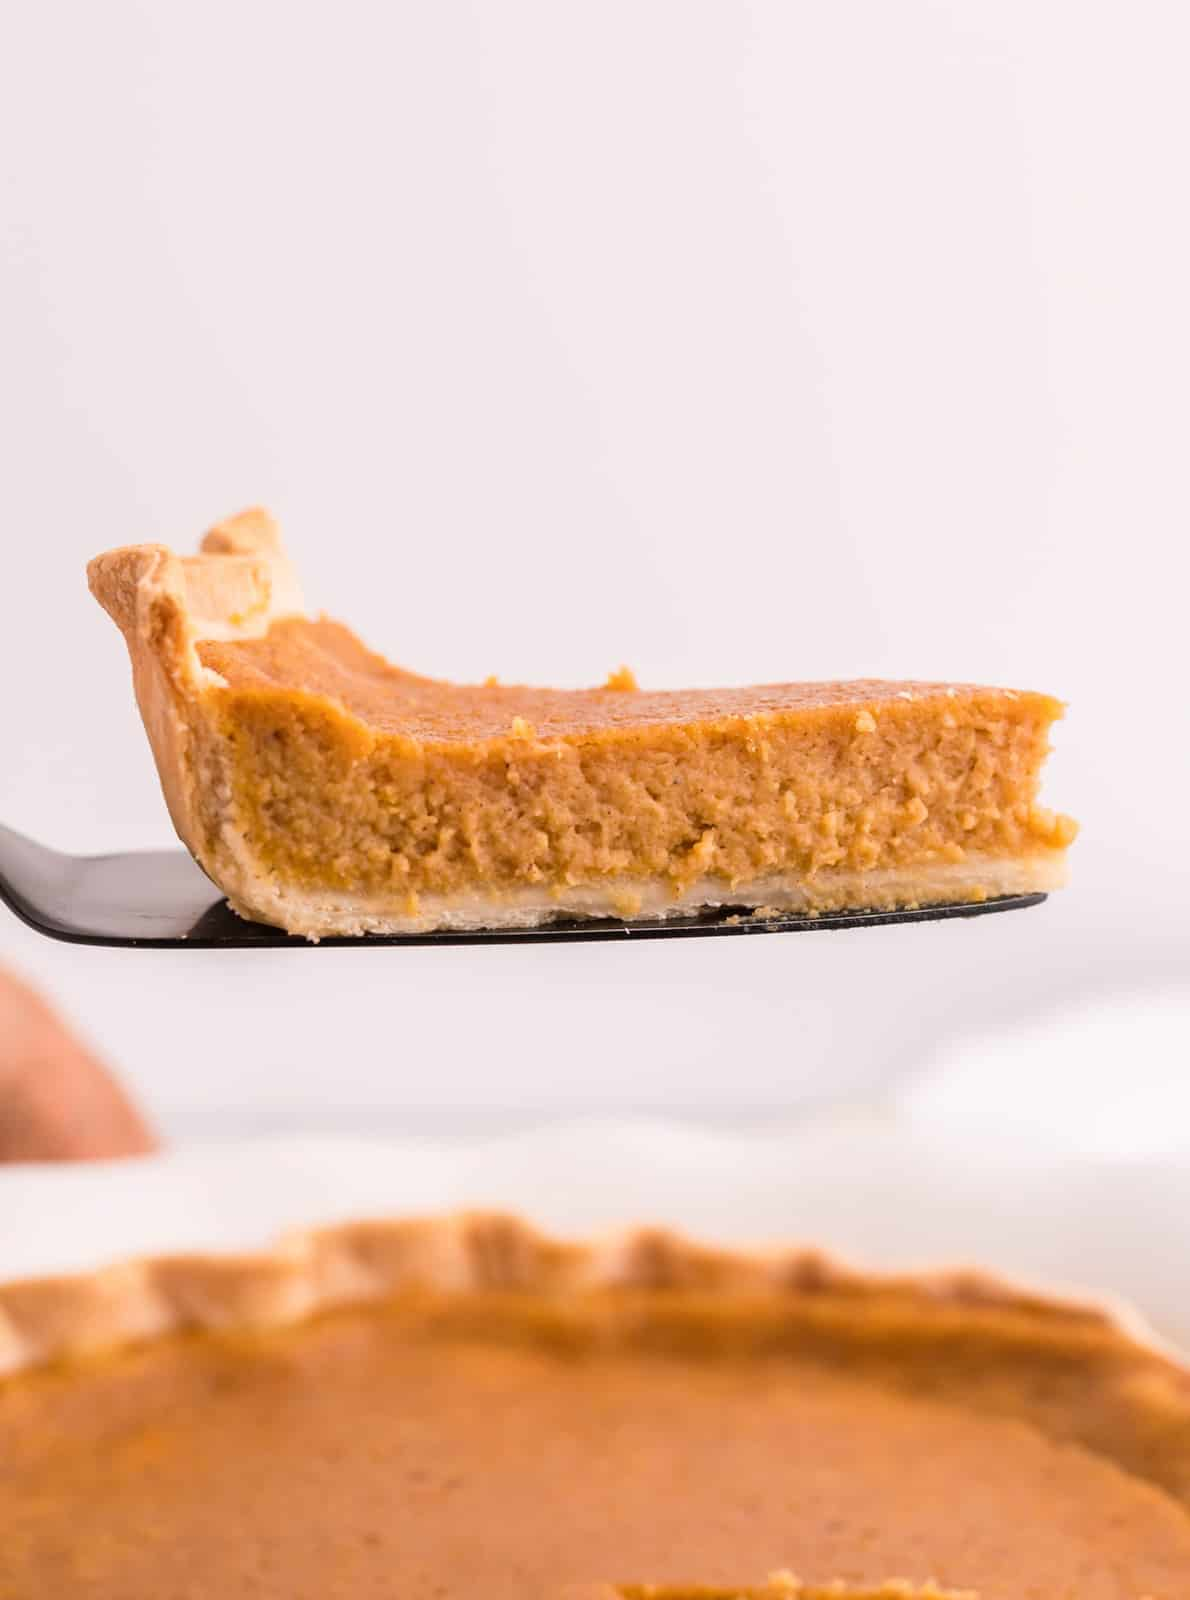 Slice of Sweet Potato Pie being lifted up on pie server